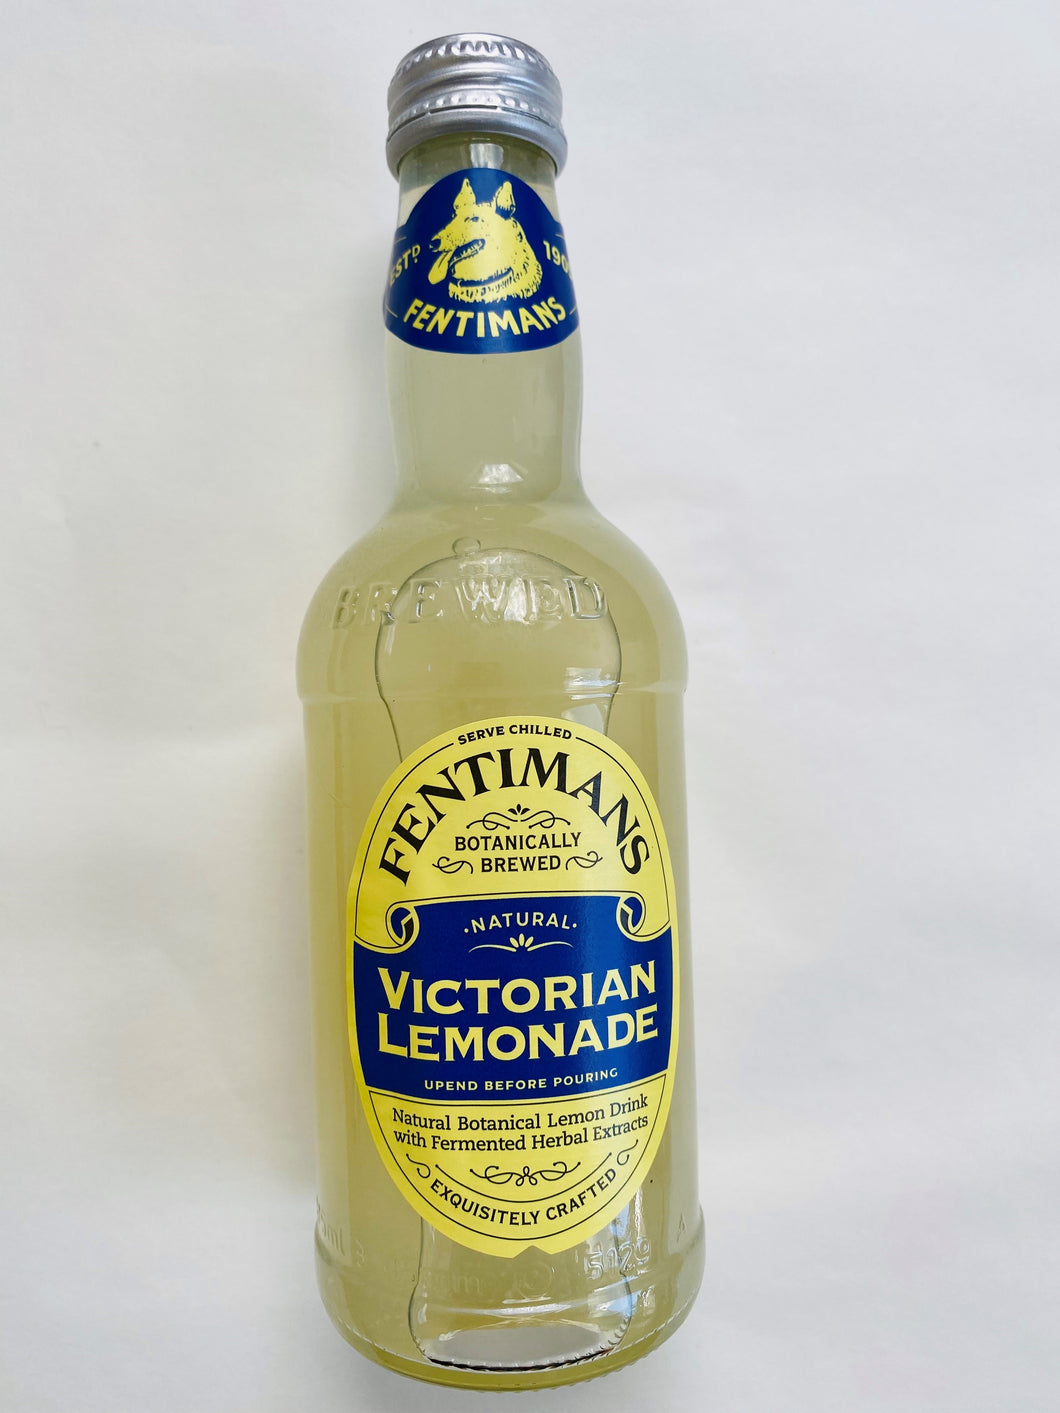 Fentimans lemonade - 275ml